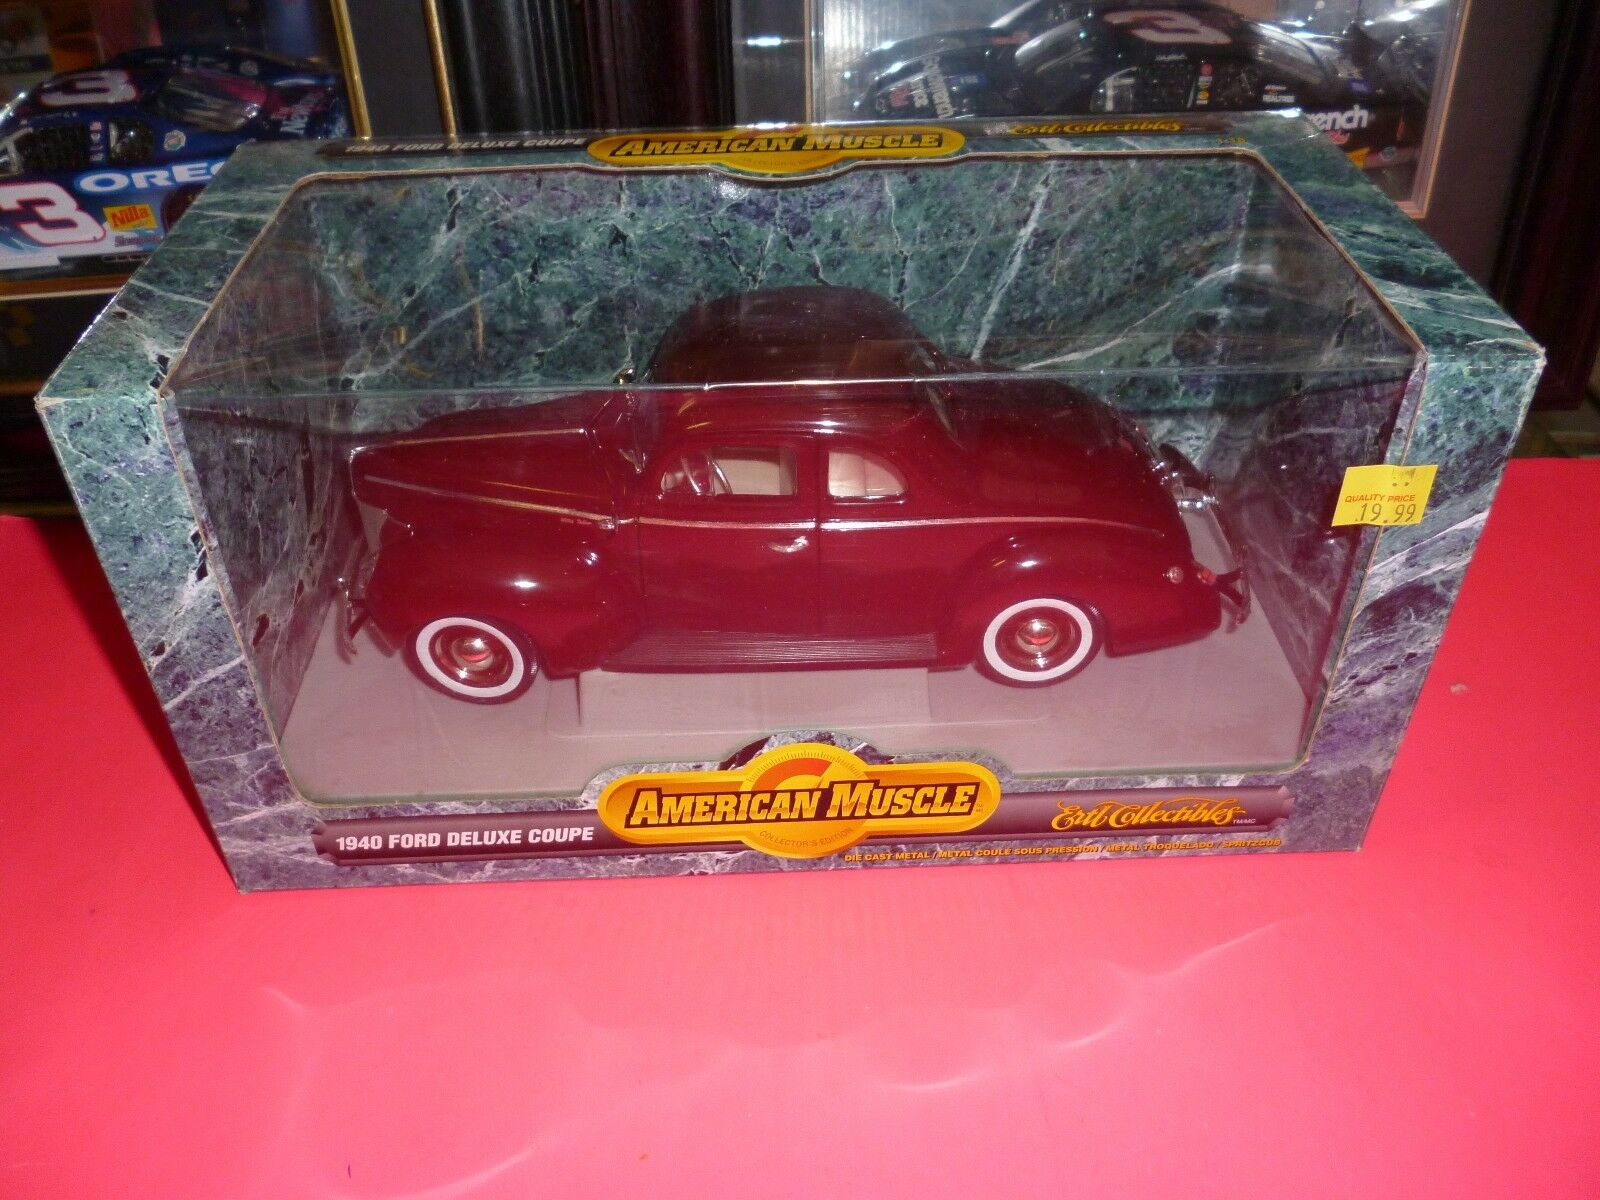 ERTL AMERICAN MUSCLE 1940 FORD DELUXE COUPE DIE-CAST IN ORIGINAL BOX